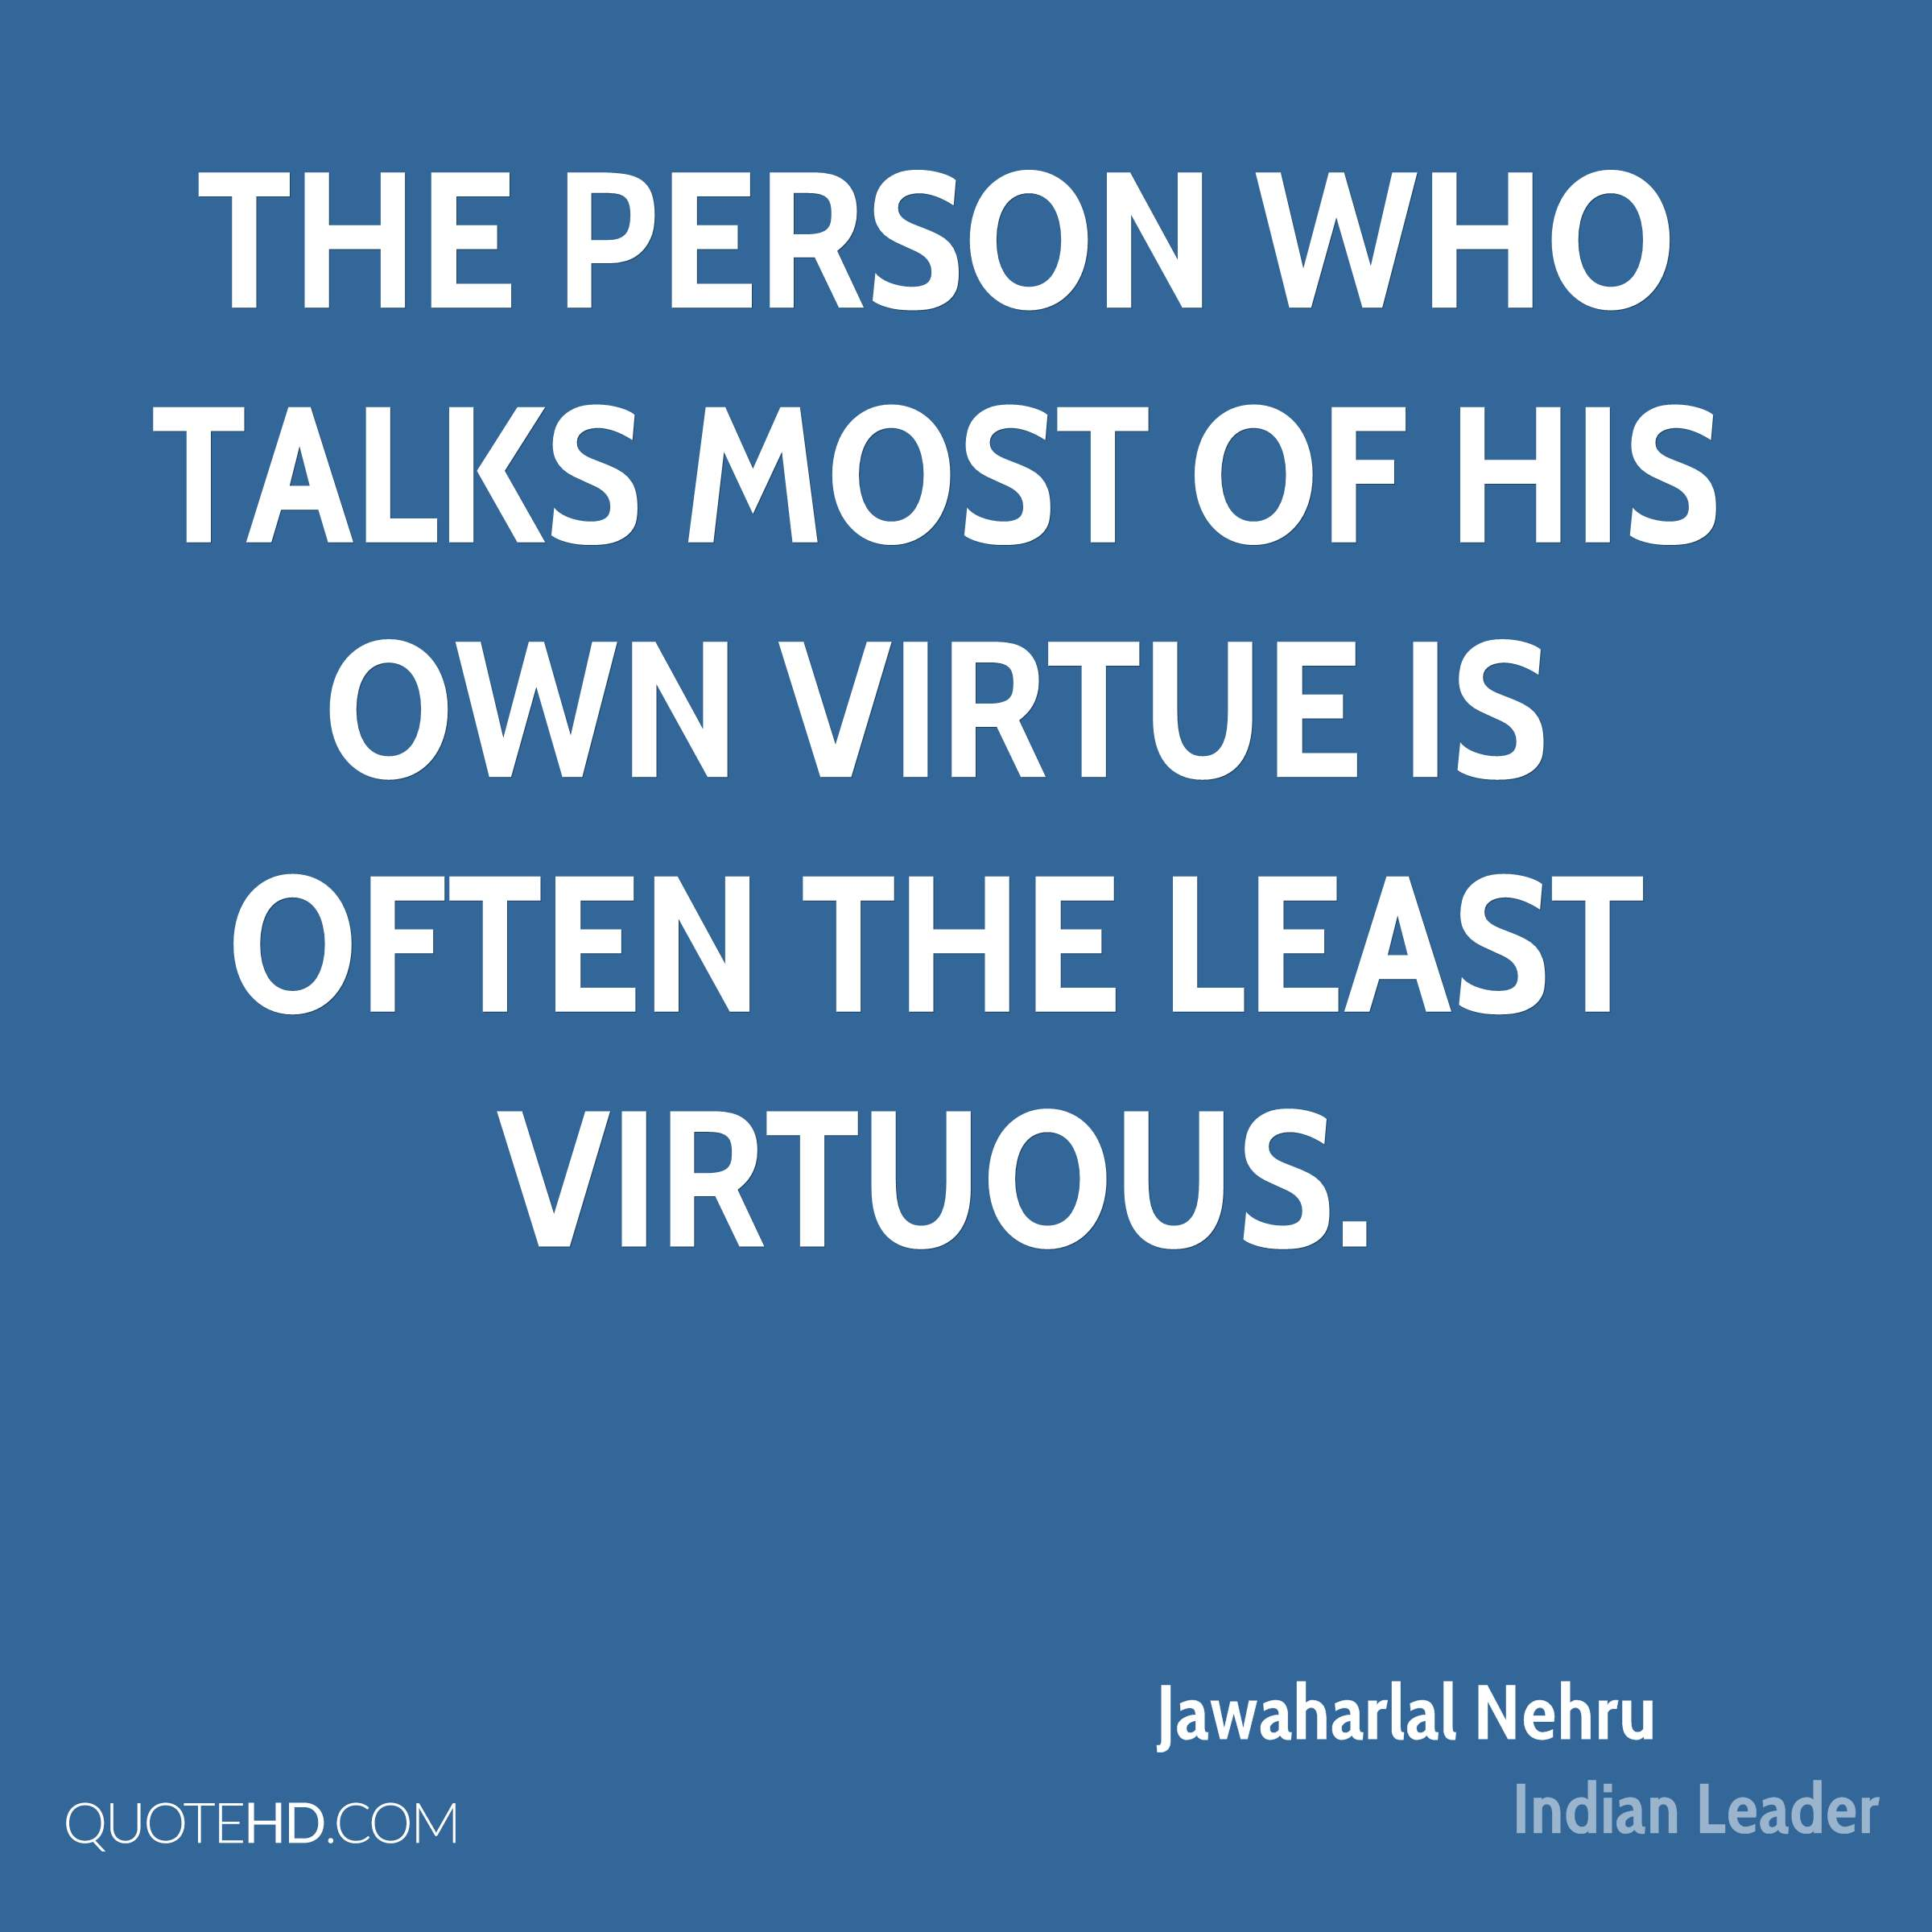 The person who talks most of his own virtue is often the least virtuous.